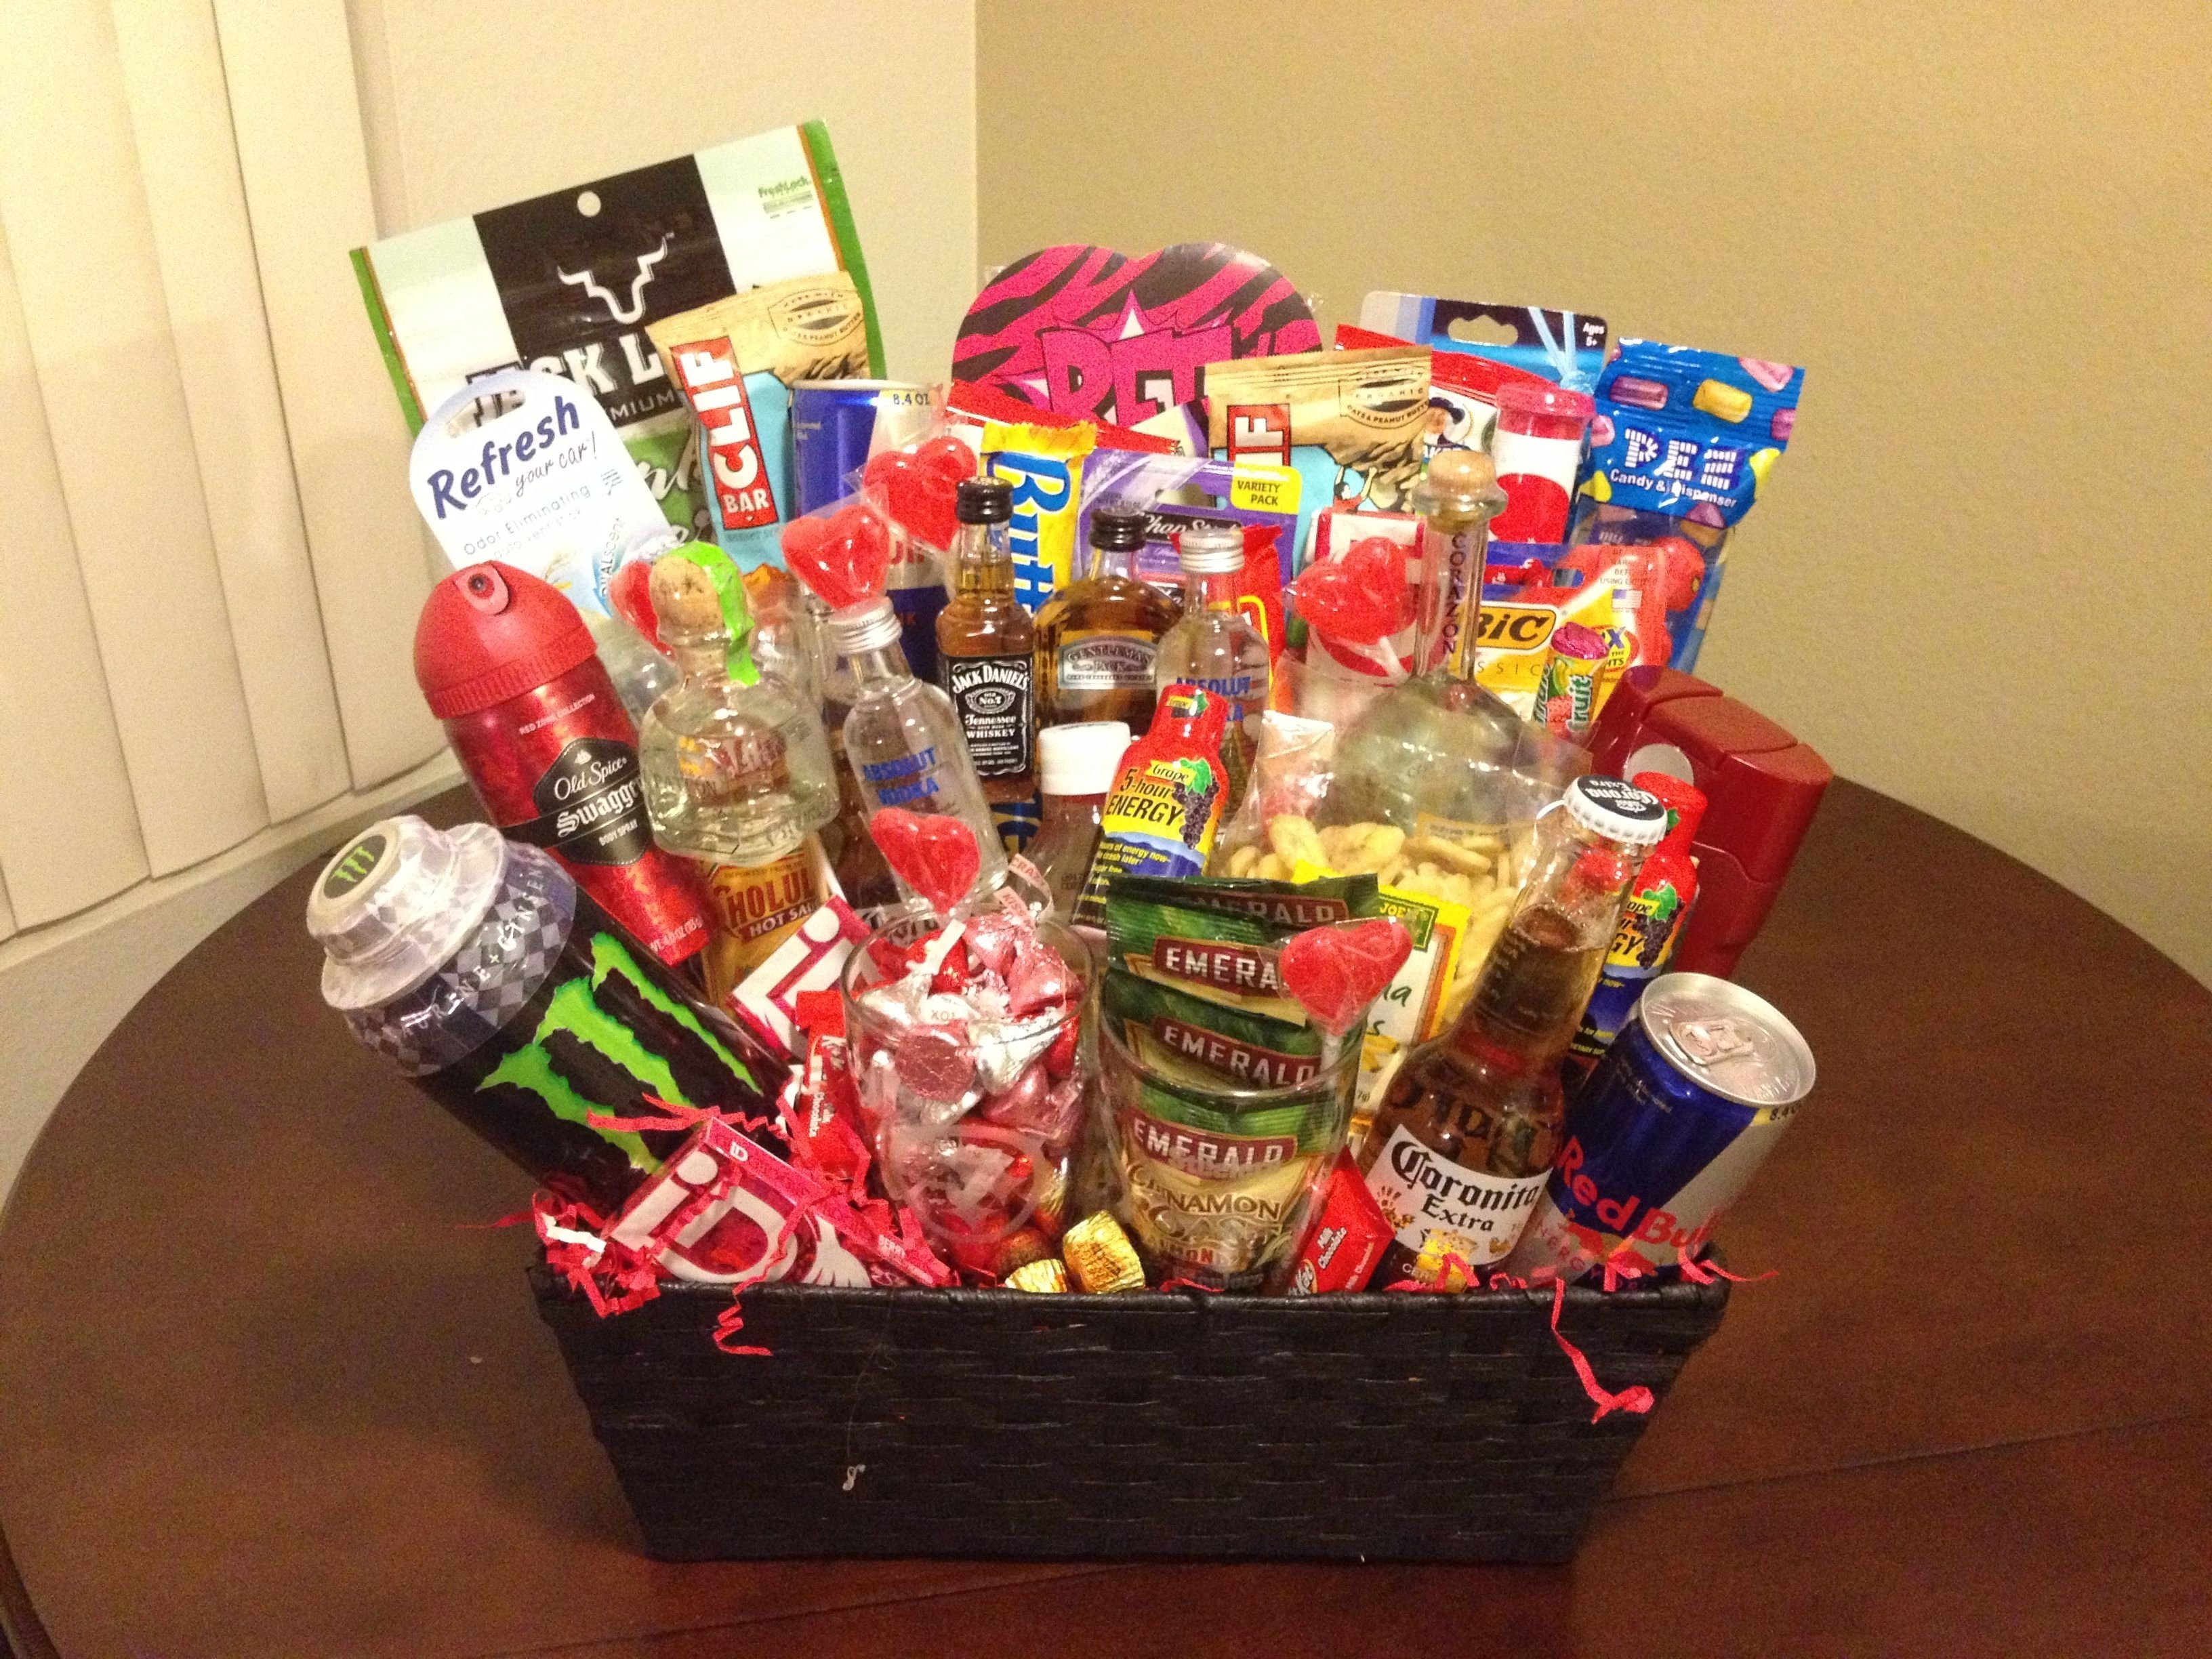 10 Beautiful Easter Basket Ideas For Boyfriend man basket diy pinterest man basket easter and gift 2 2020